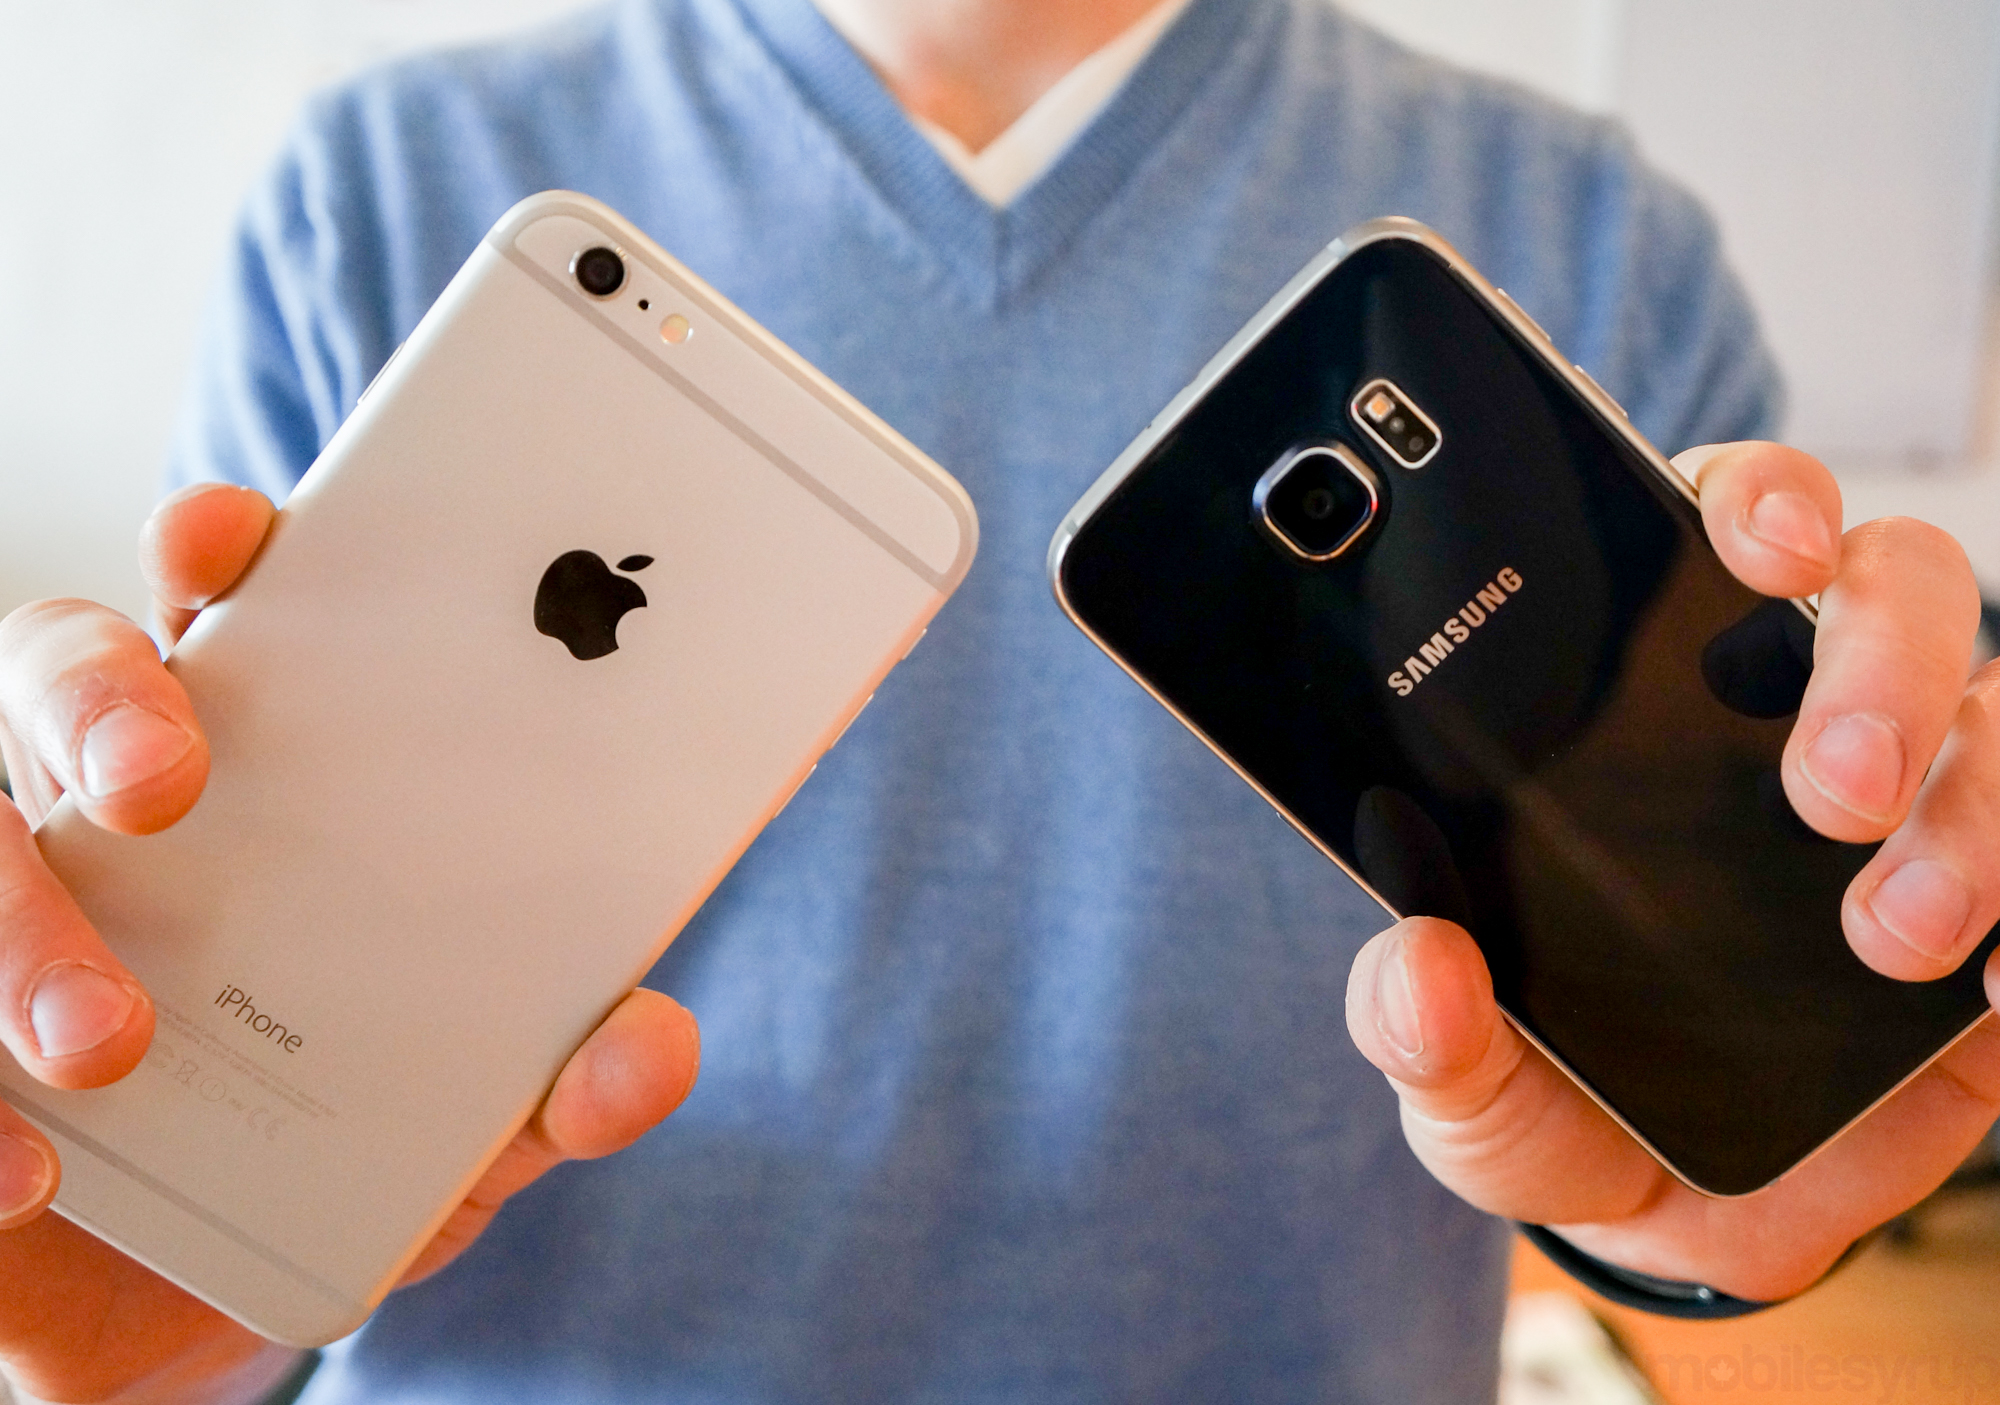 iPhone 6 Plus, Galaxy S6